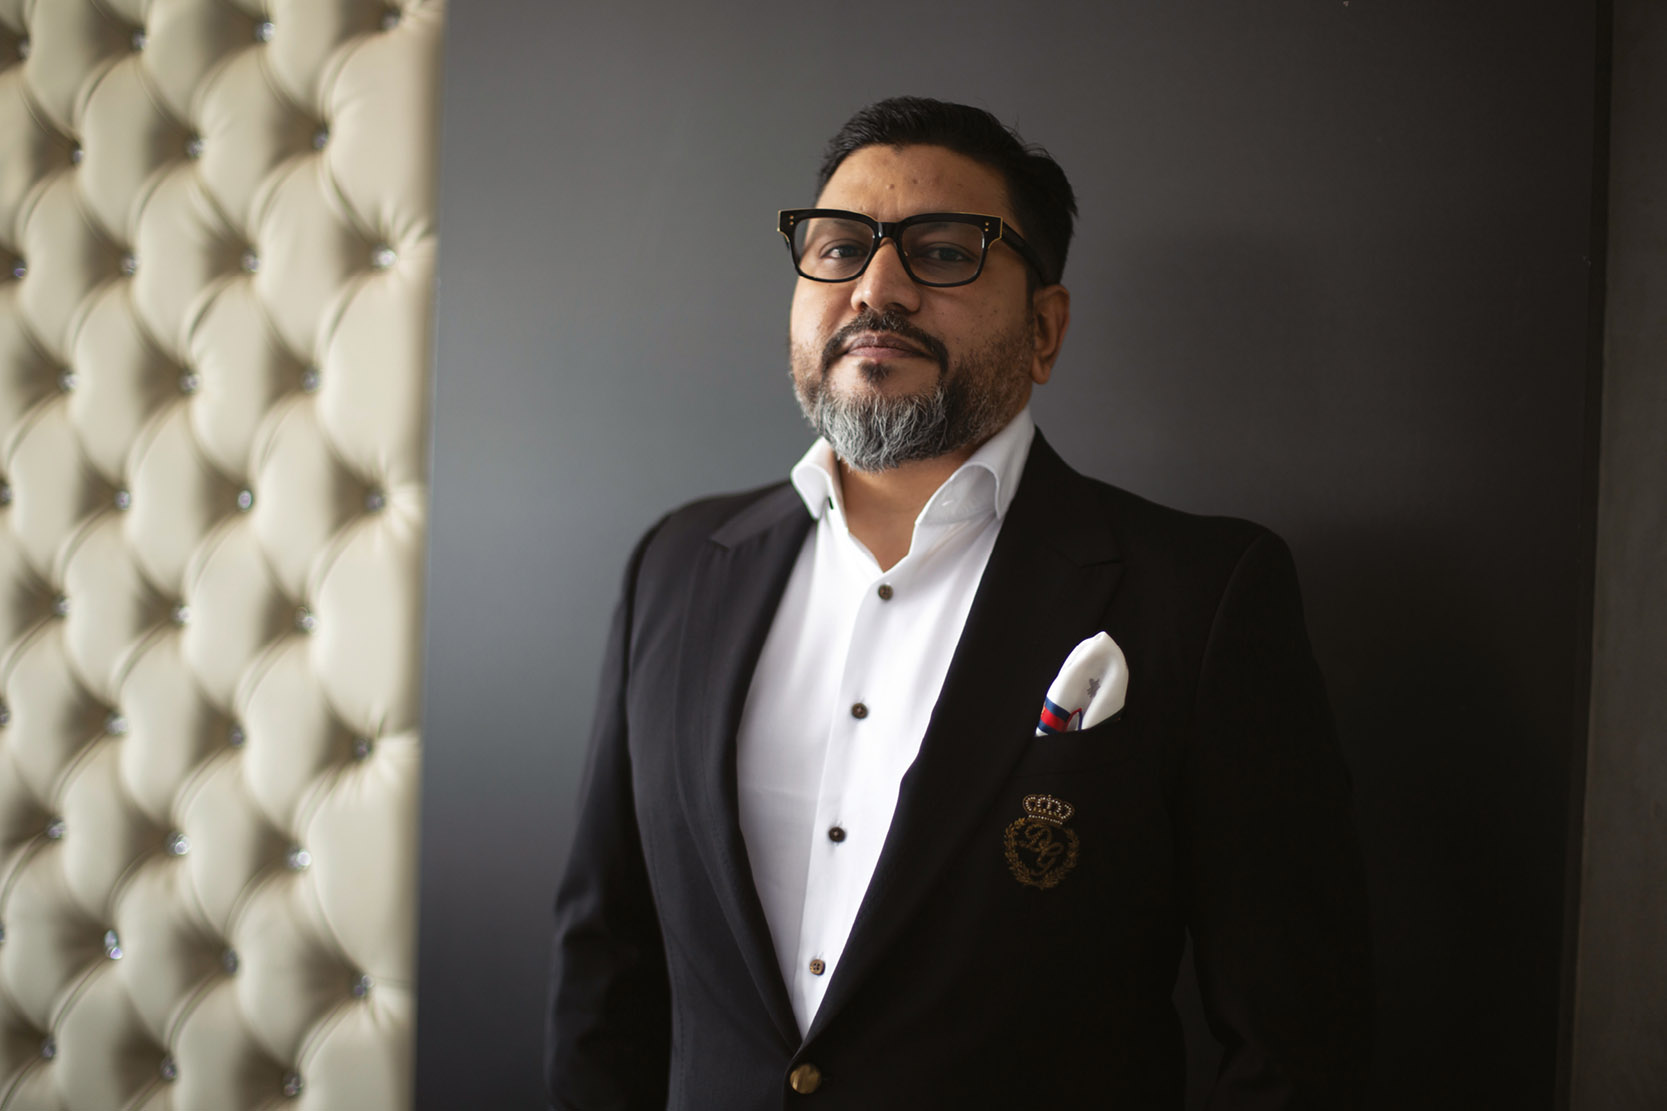 Nahid Fakir, Owner and Managing Director of Fakir Fashion Limited